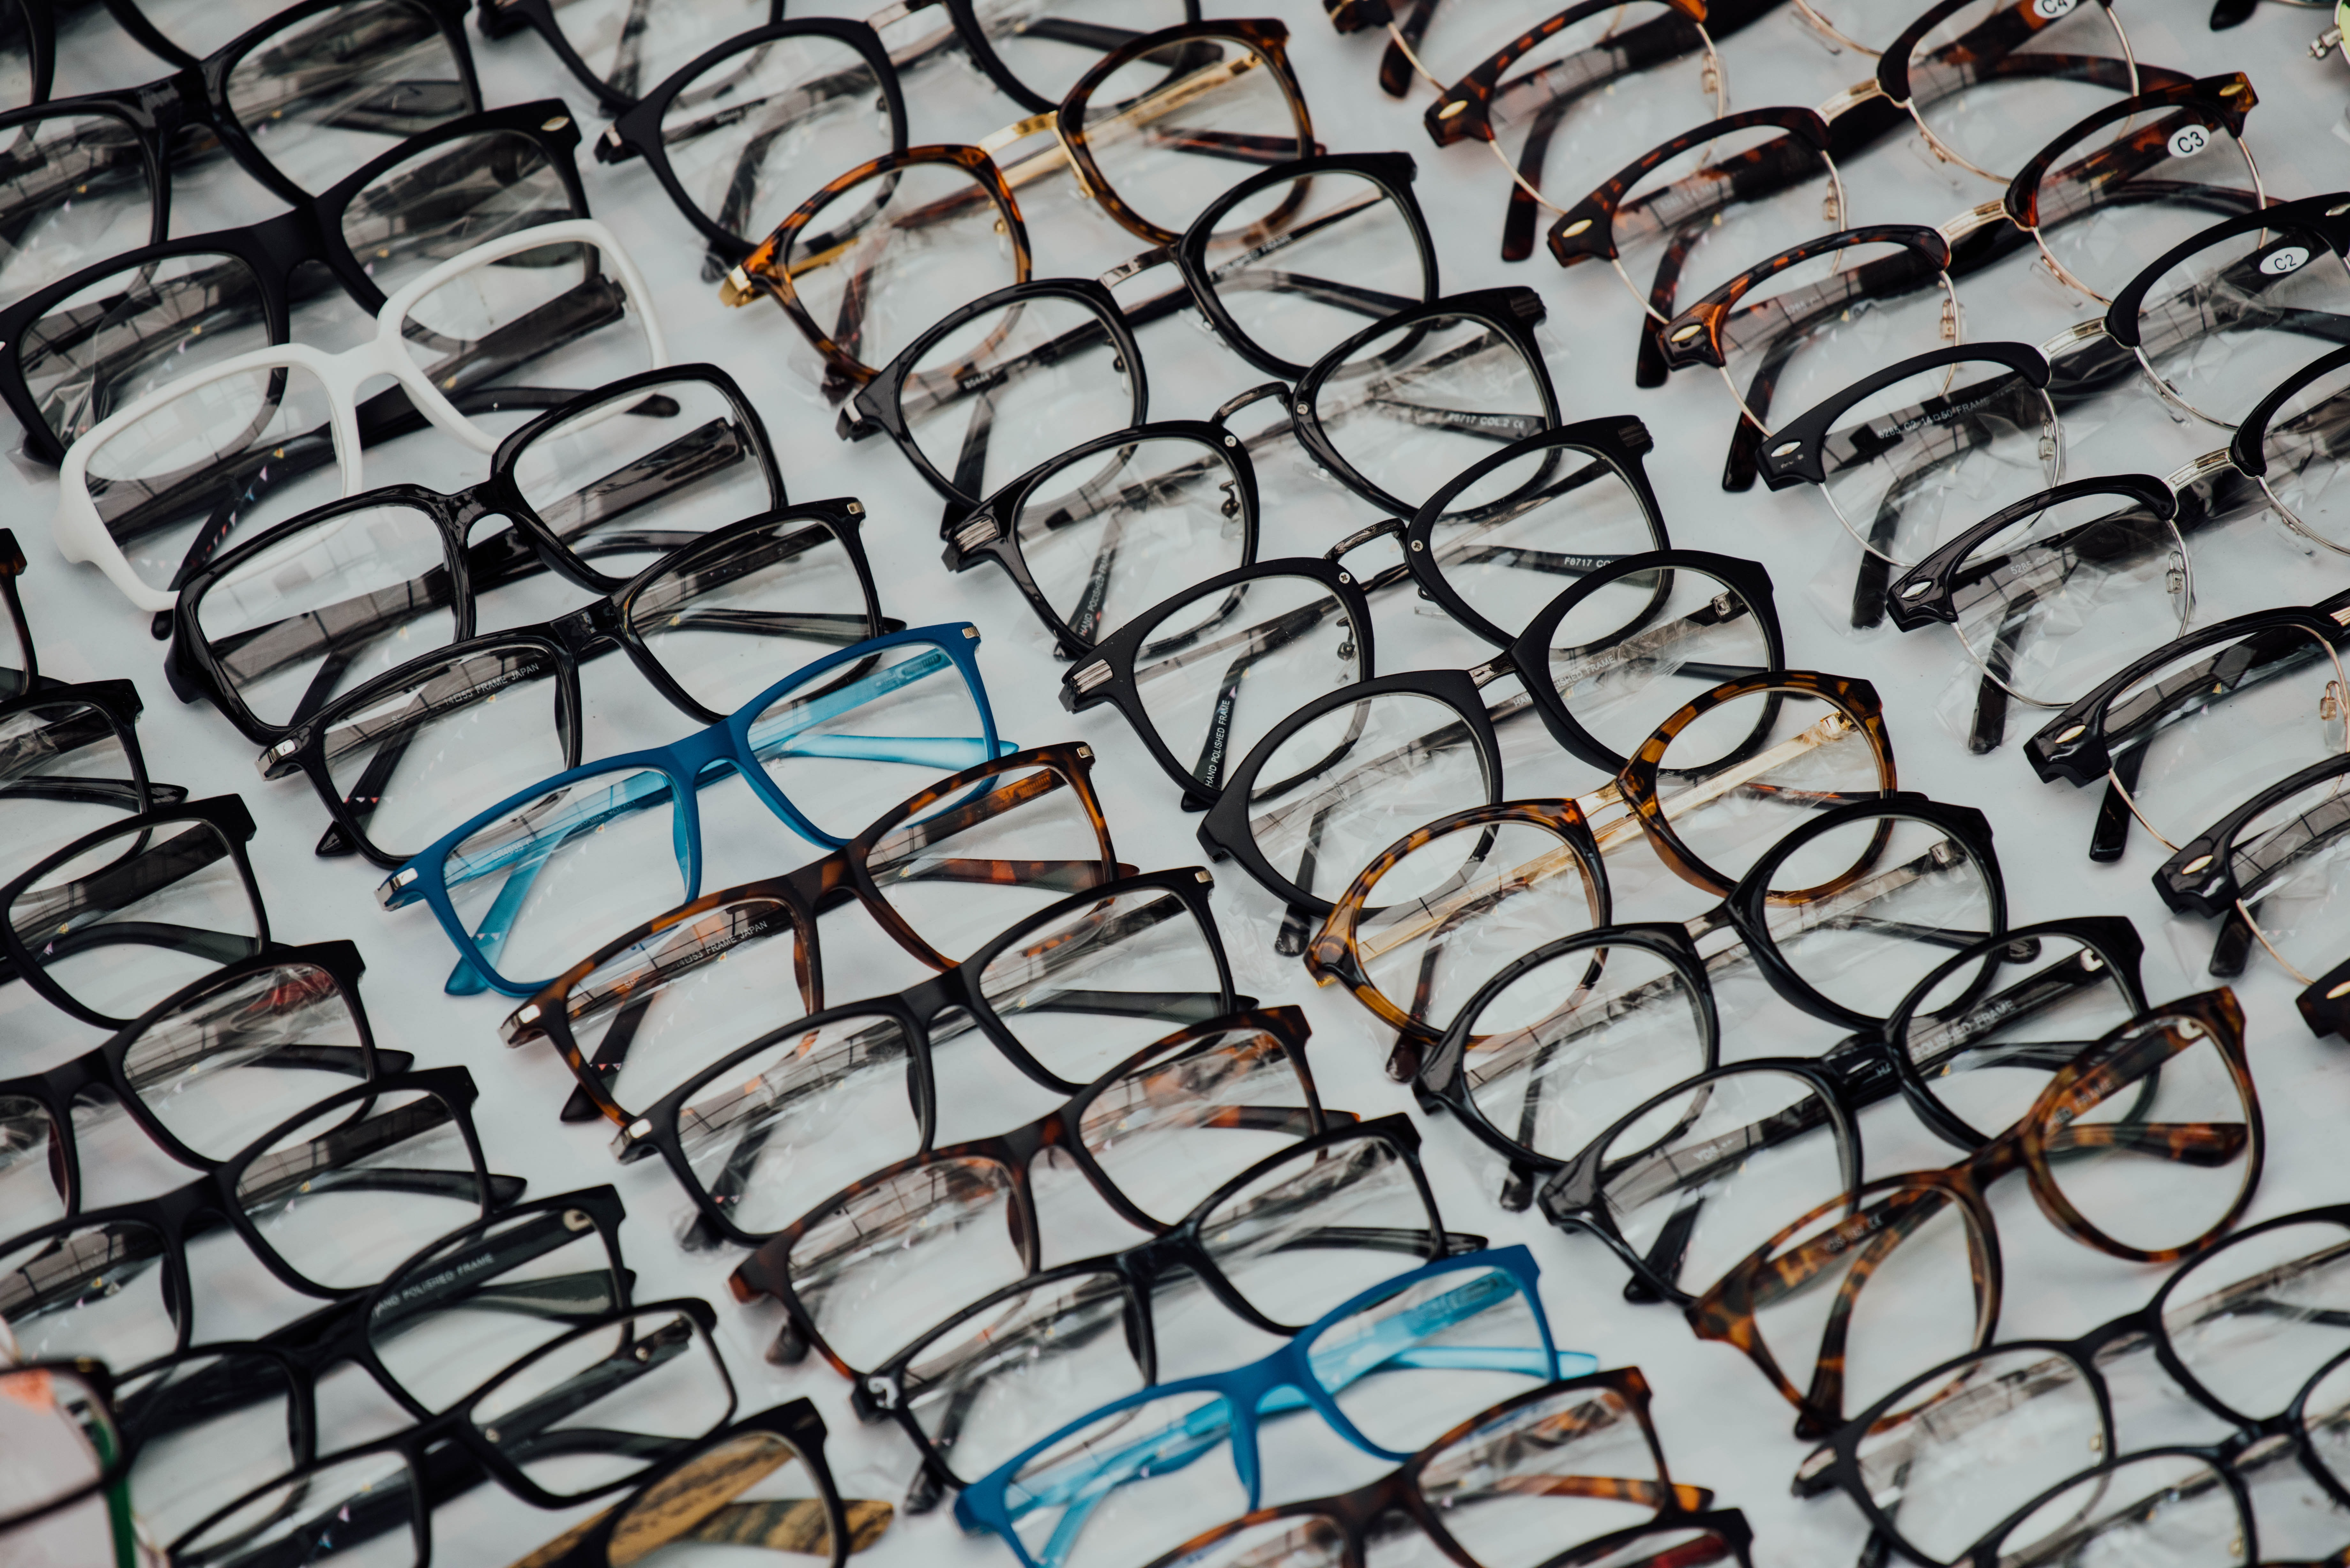 eyeglasses lot